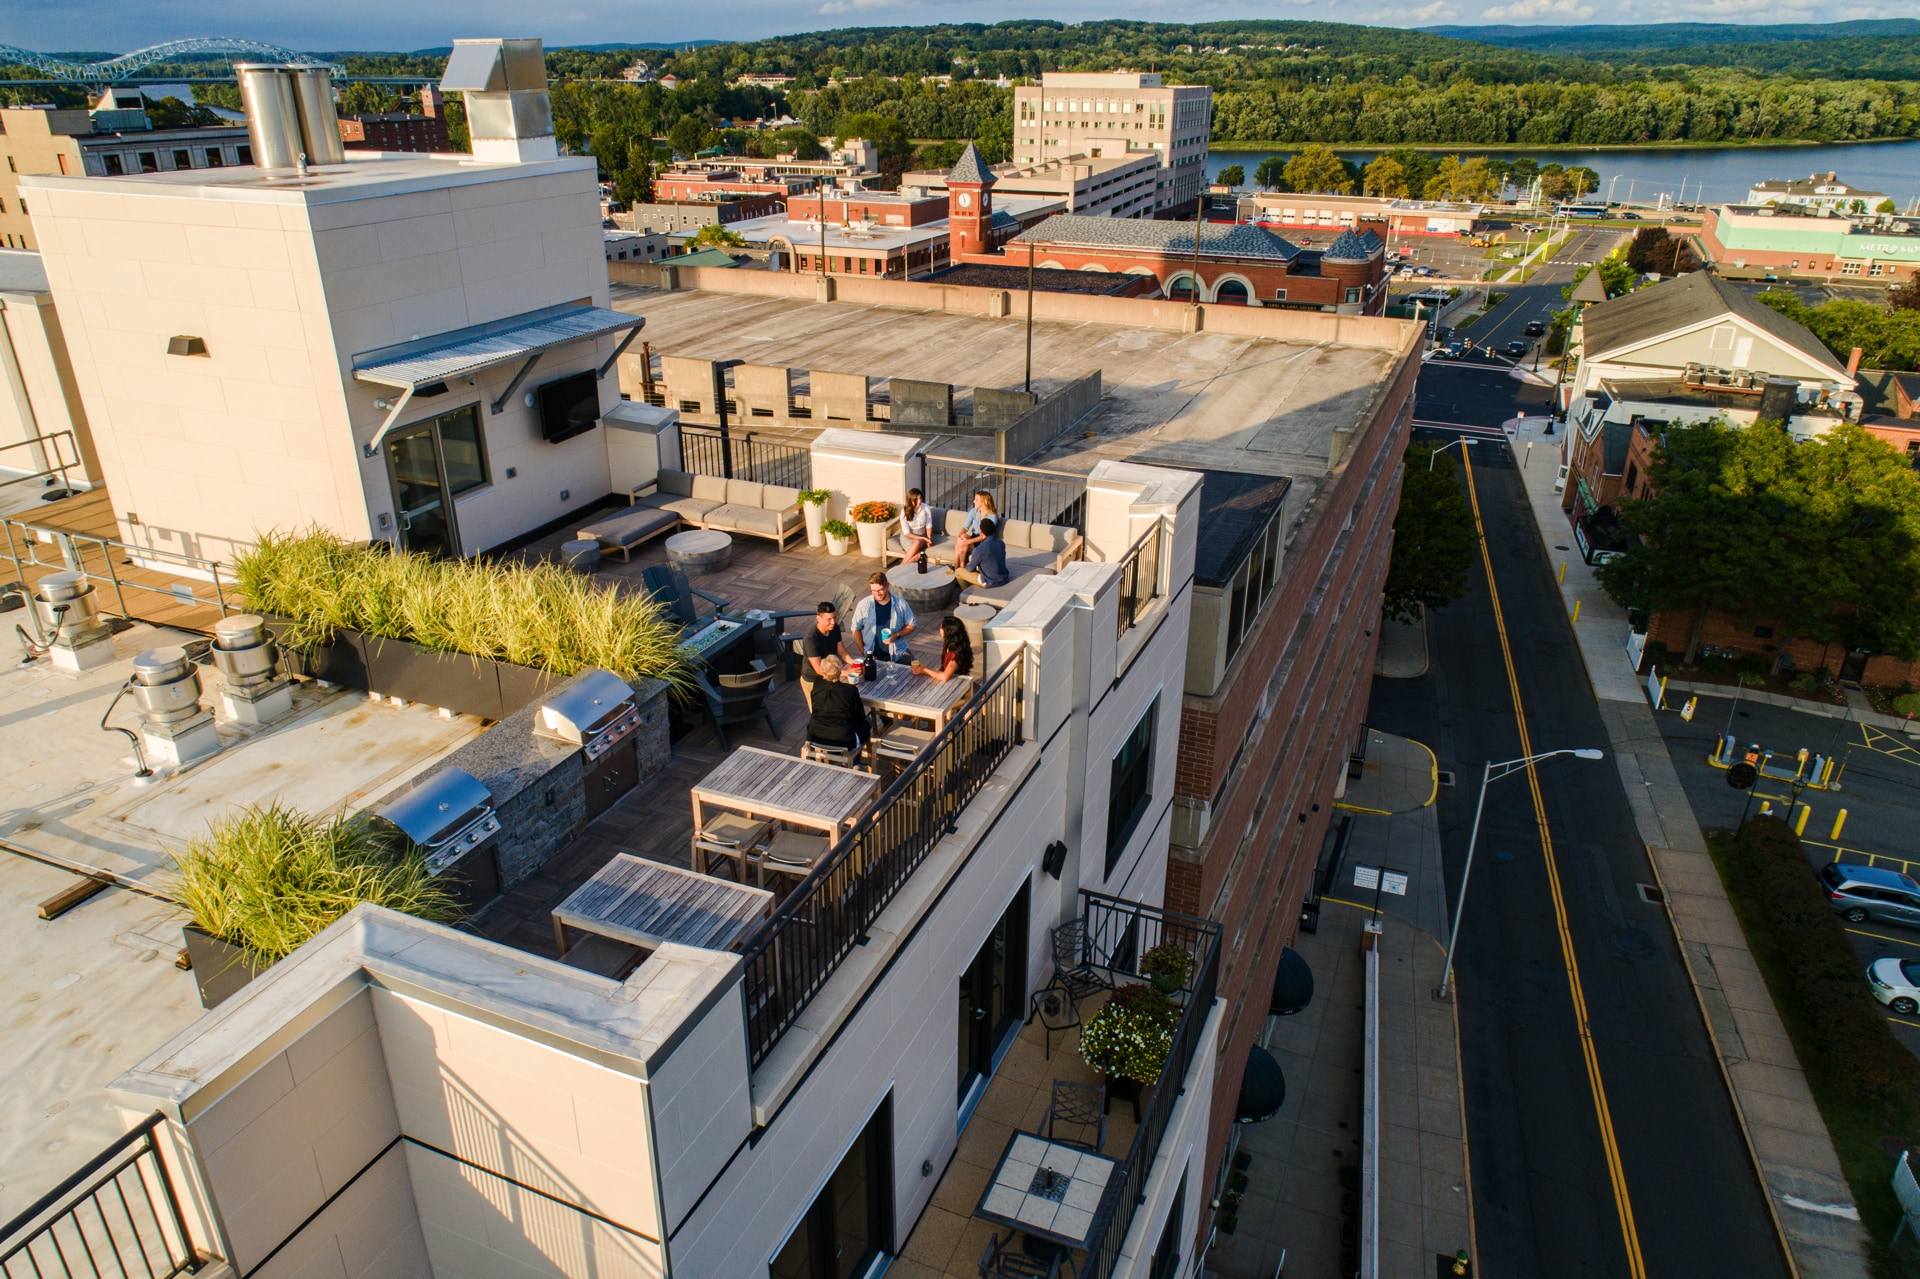 Rooftop deck overlooking downtown Middletown and the Connecticut River